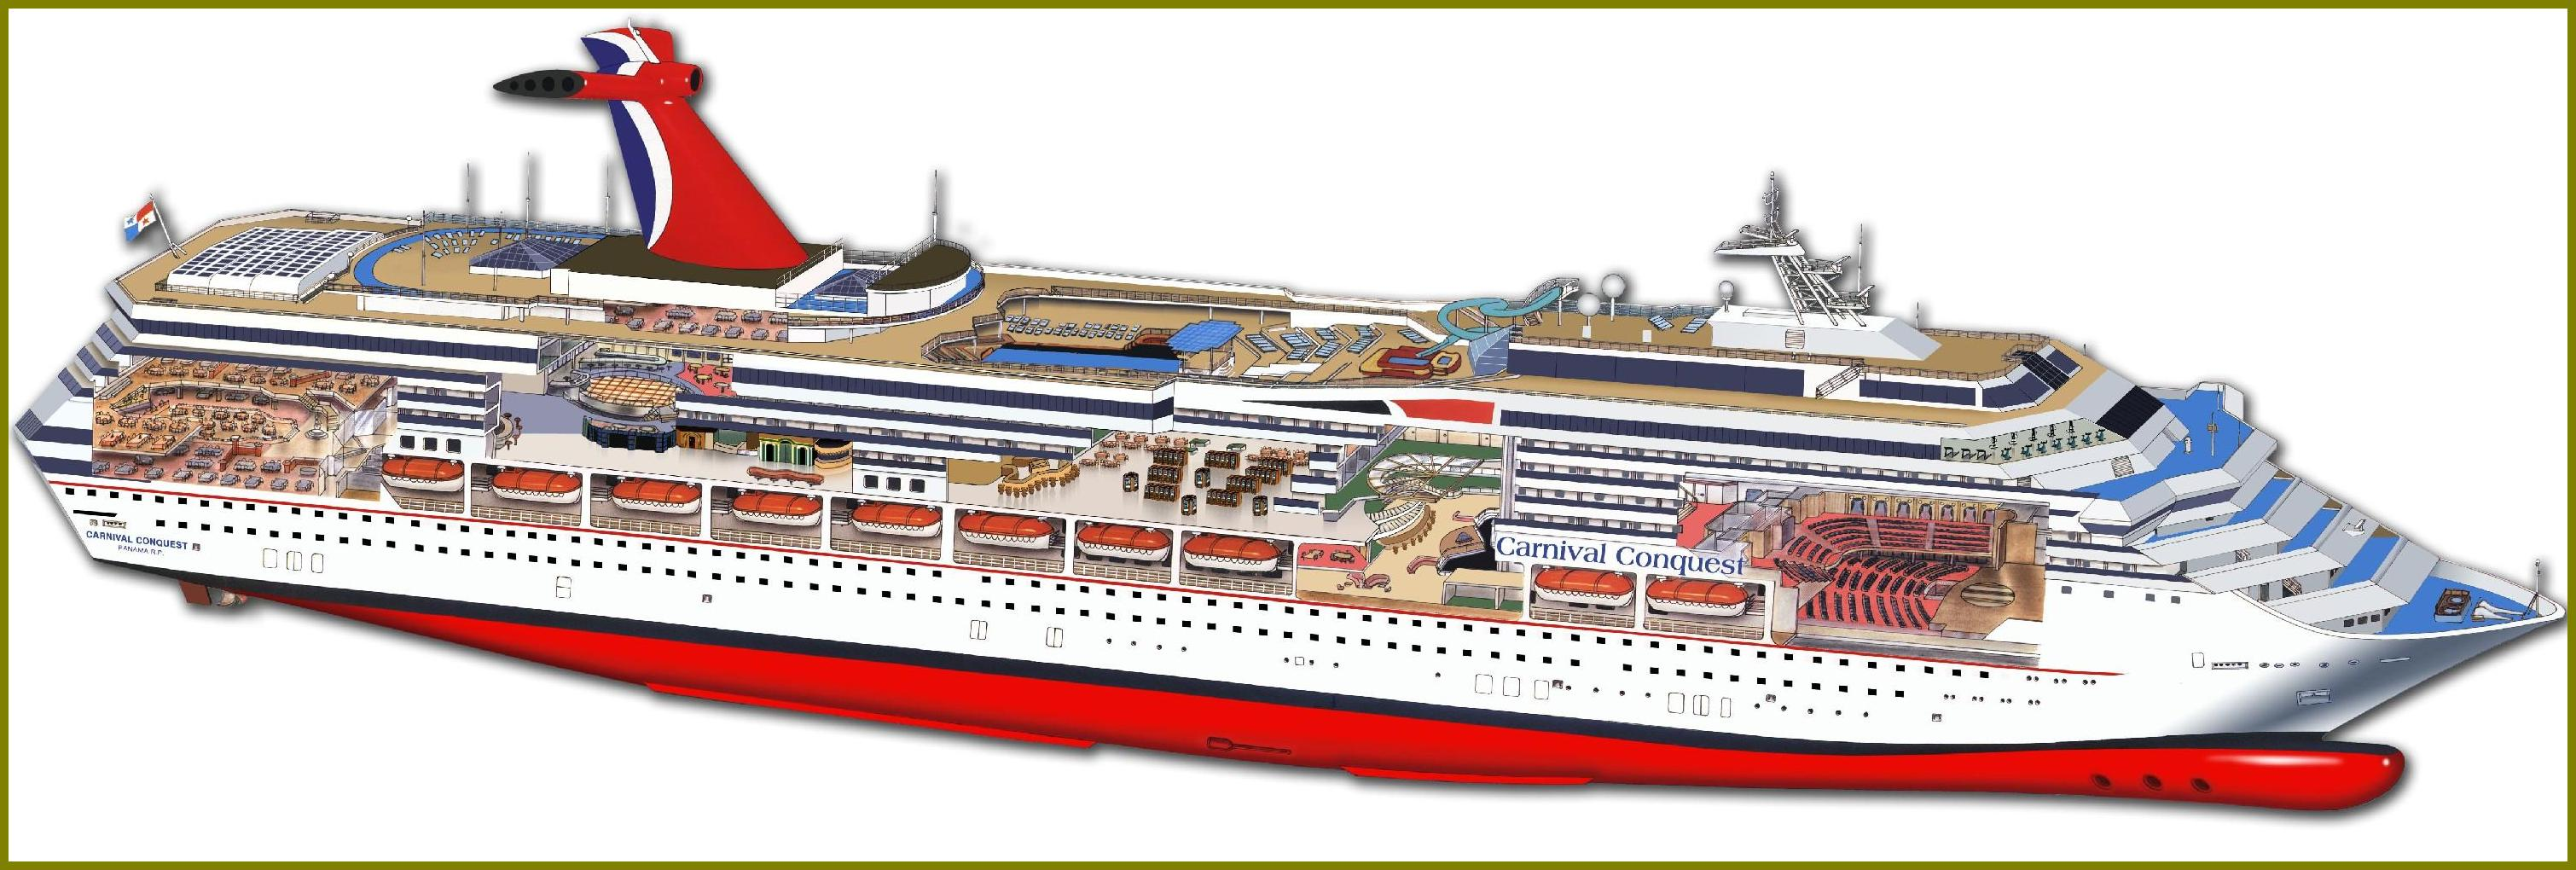 carnival cruise ship diagram dog skeleton labeled conquest review cabin 8455 resolution 3d cutaway of the